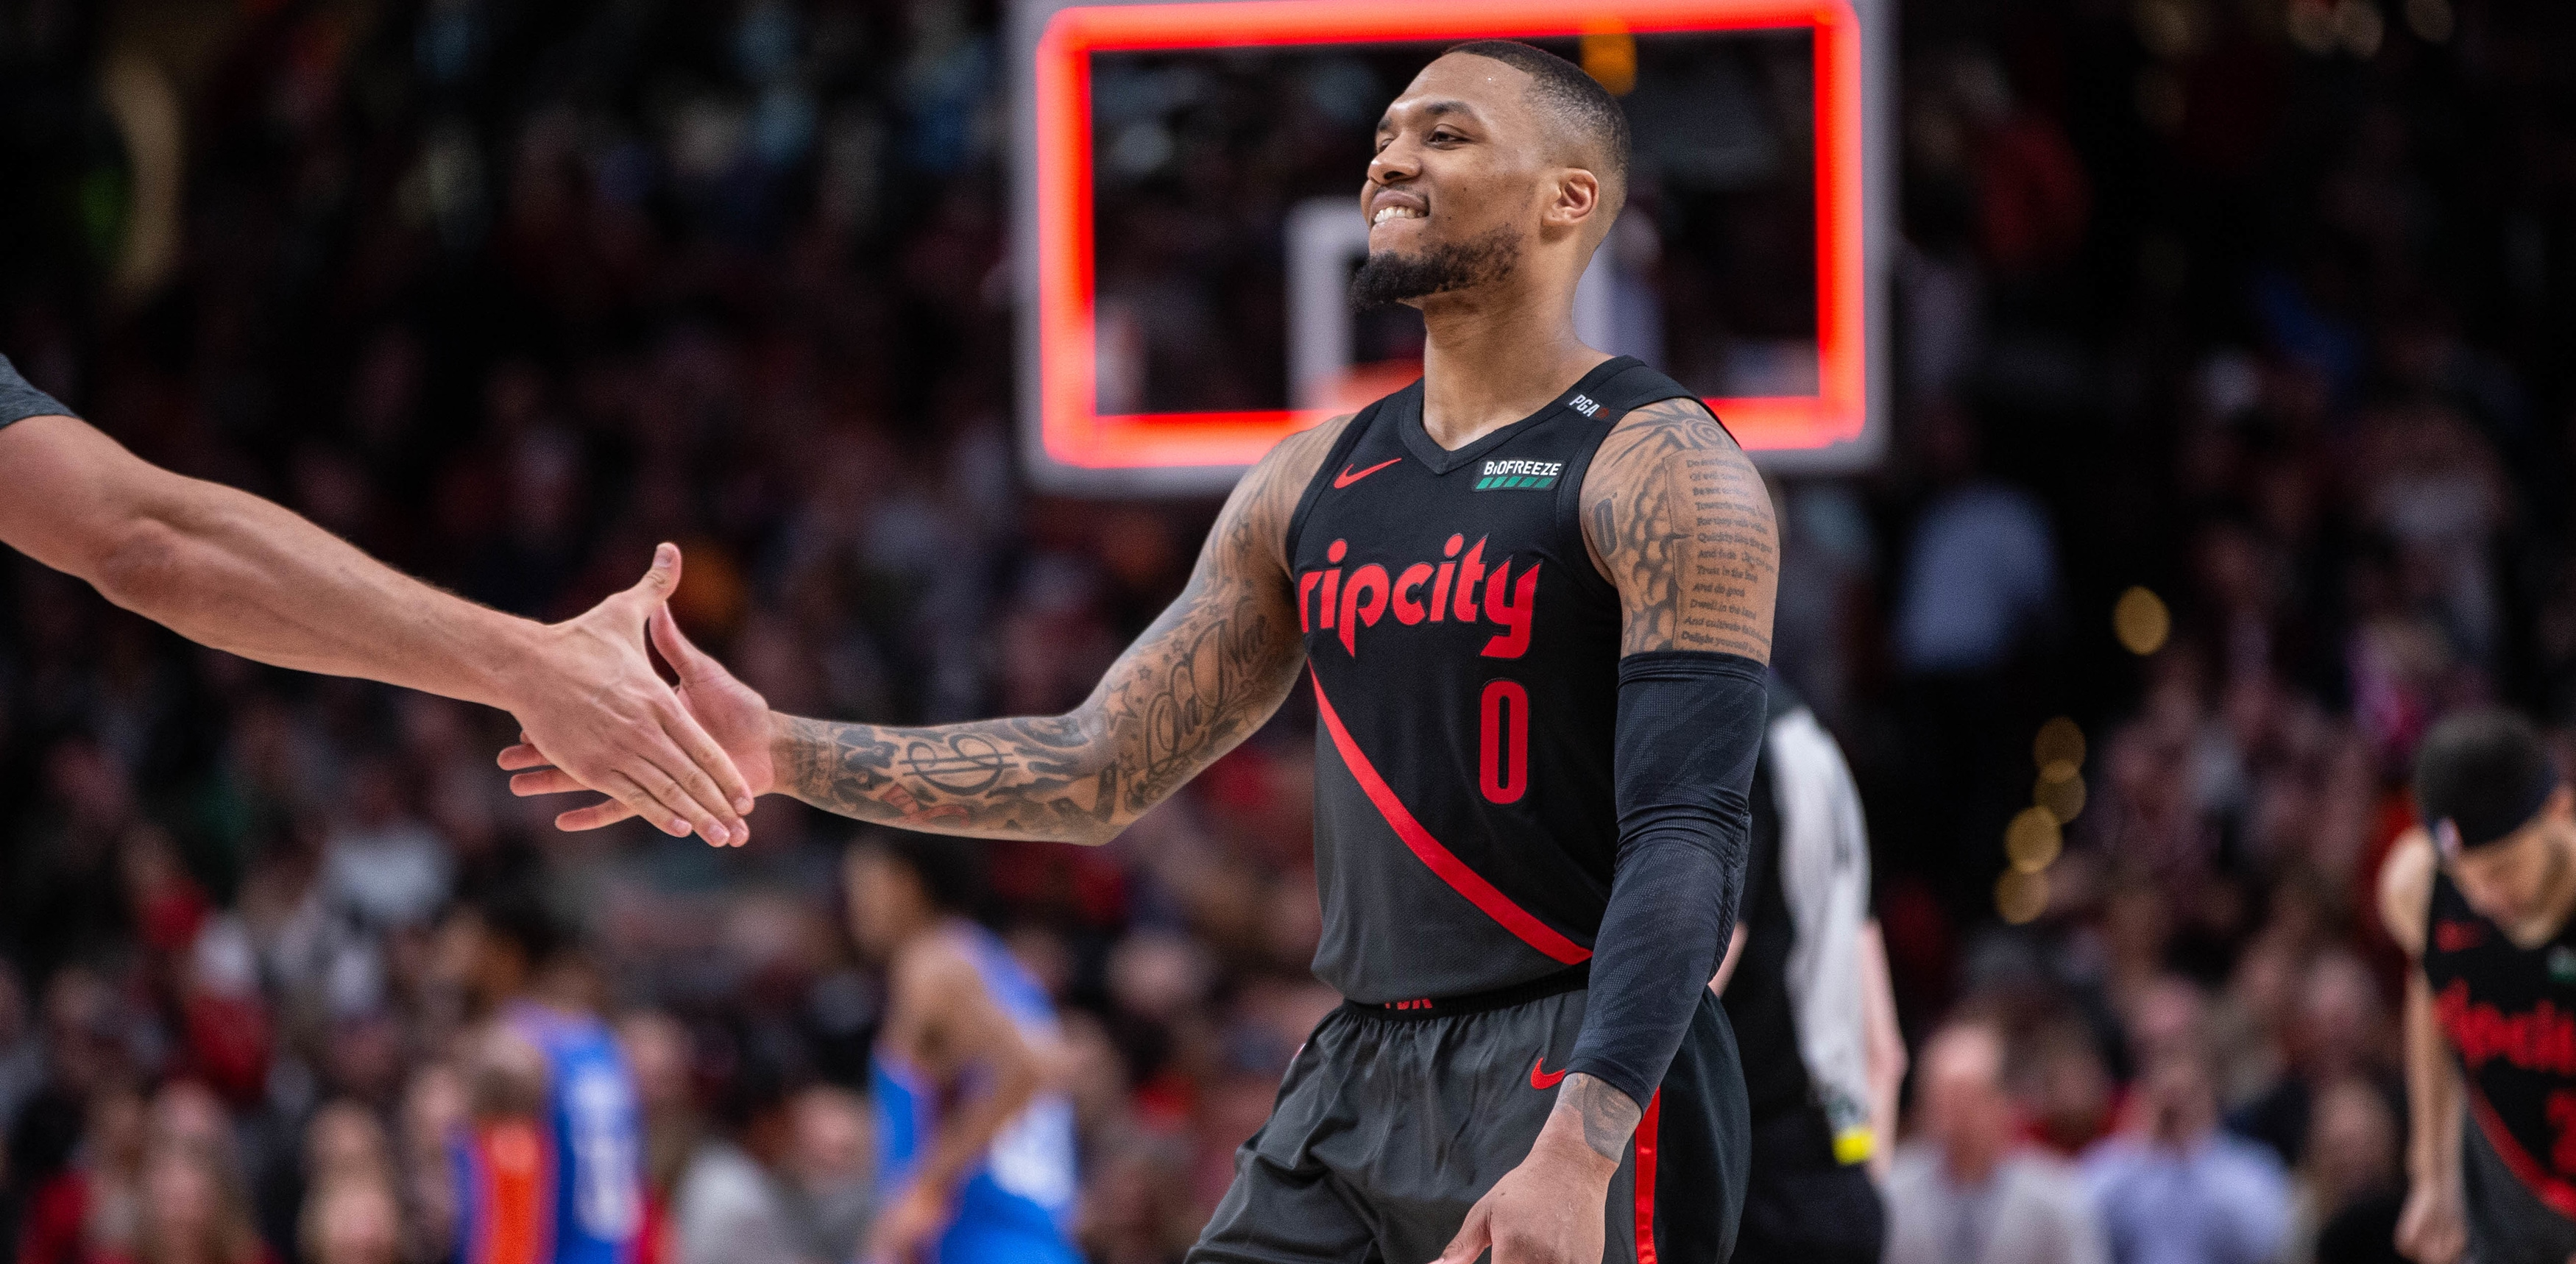 b3ace349a99 Lillard Moves Into Second In Scoring, Vows To Take Top Spot From Drexler